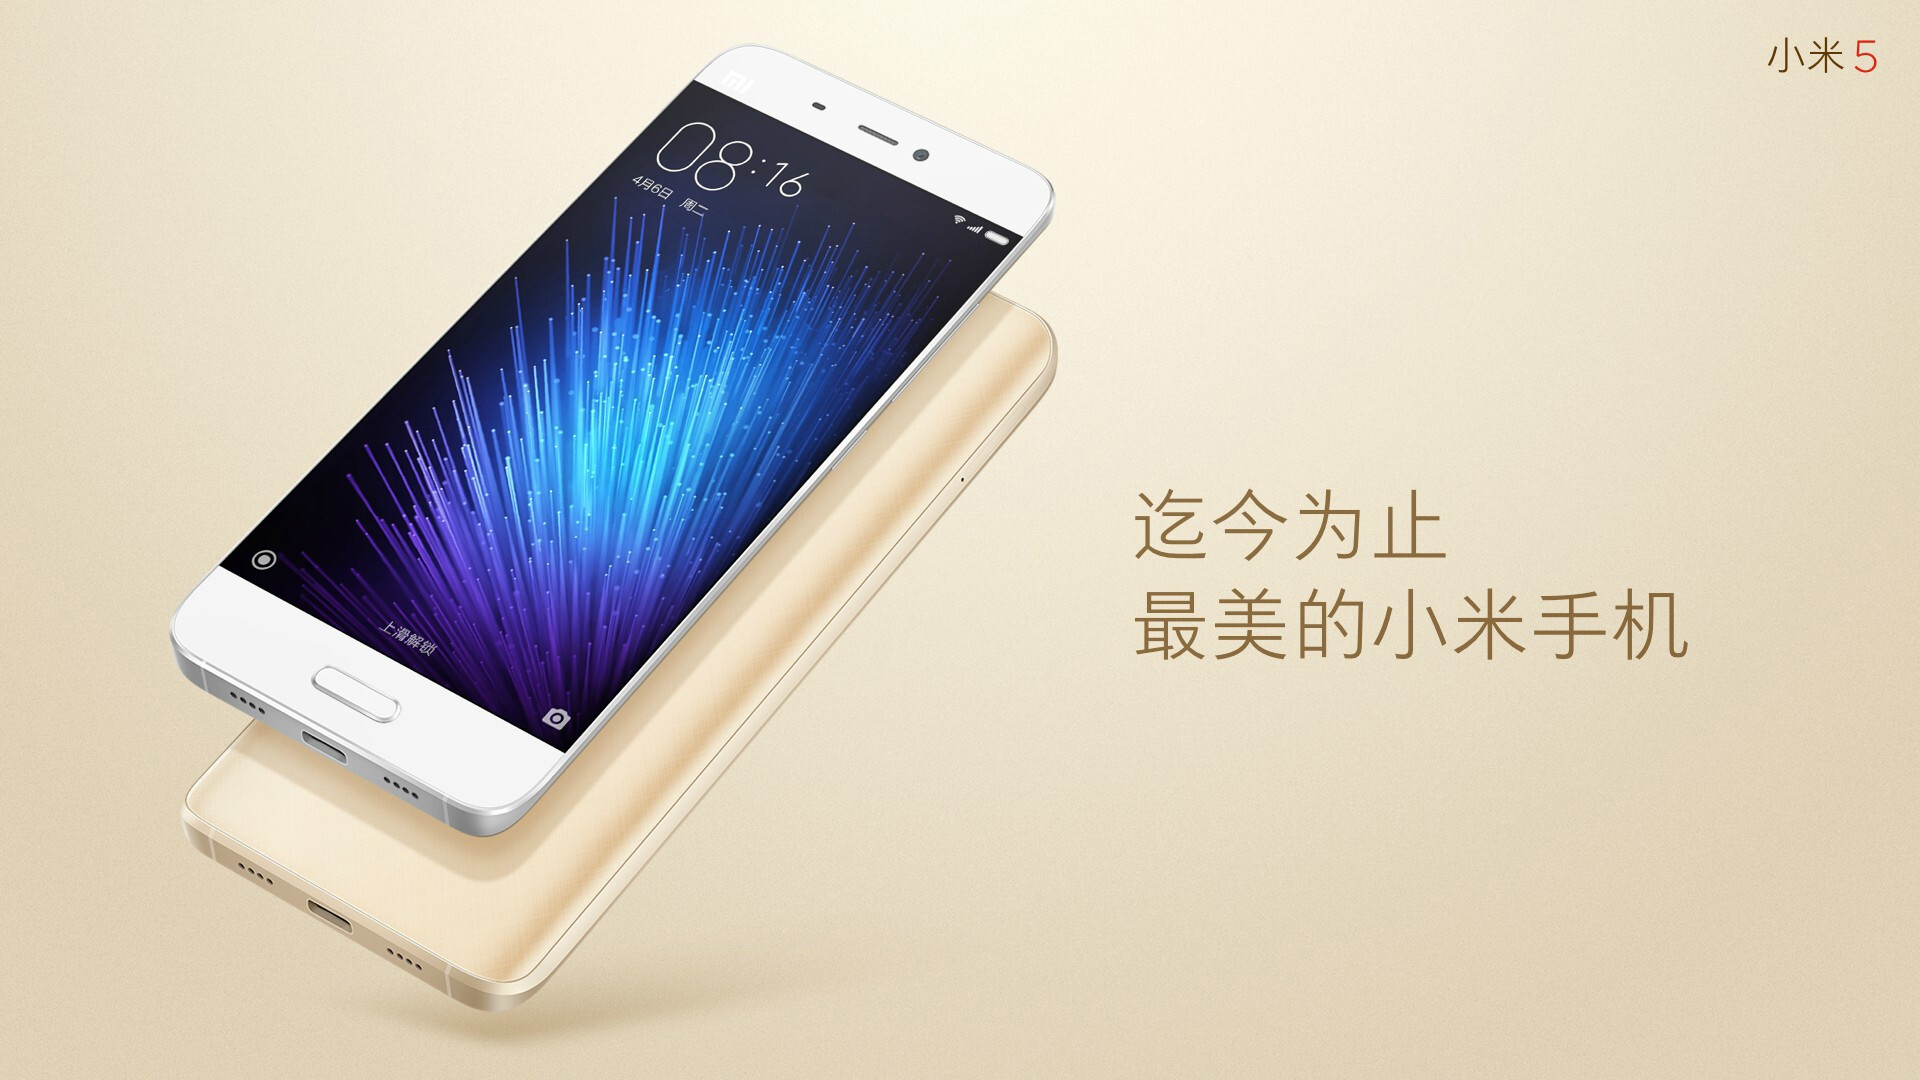 Xiaomi Mi 5 is official: Xiaomi's most powerful phone ever